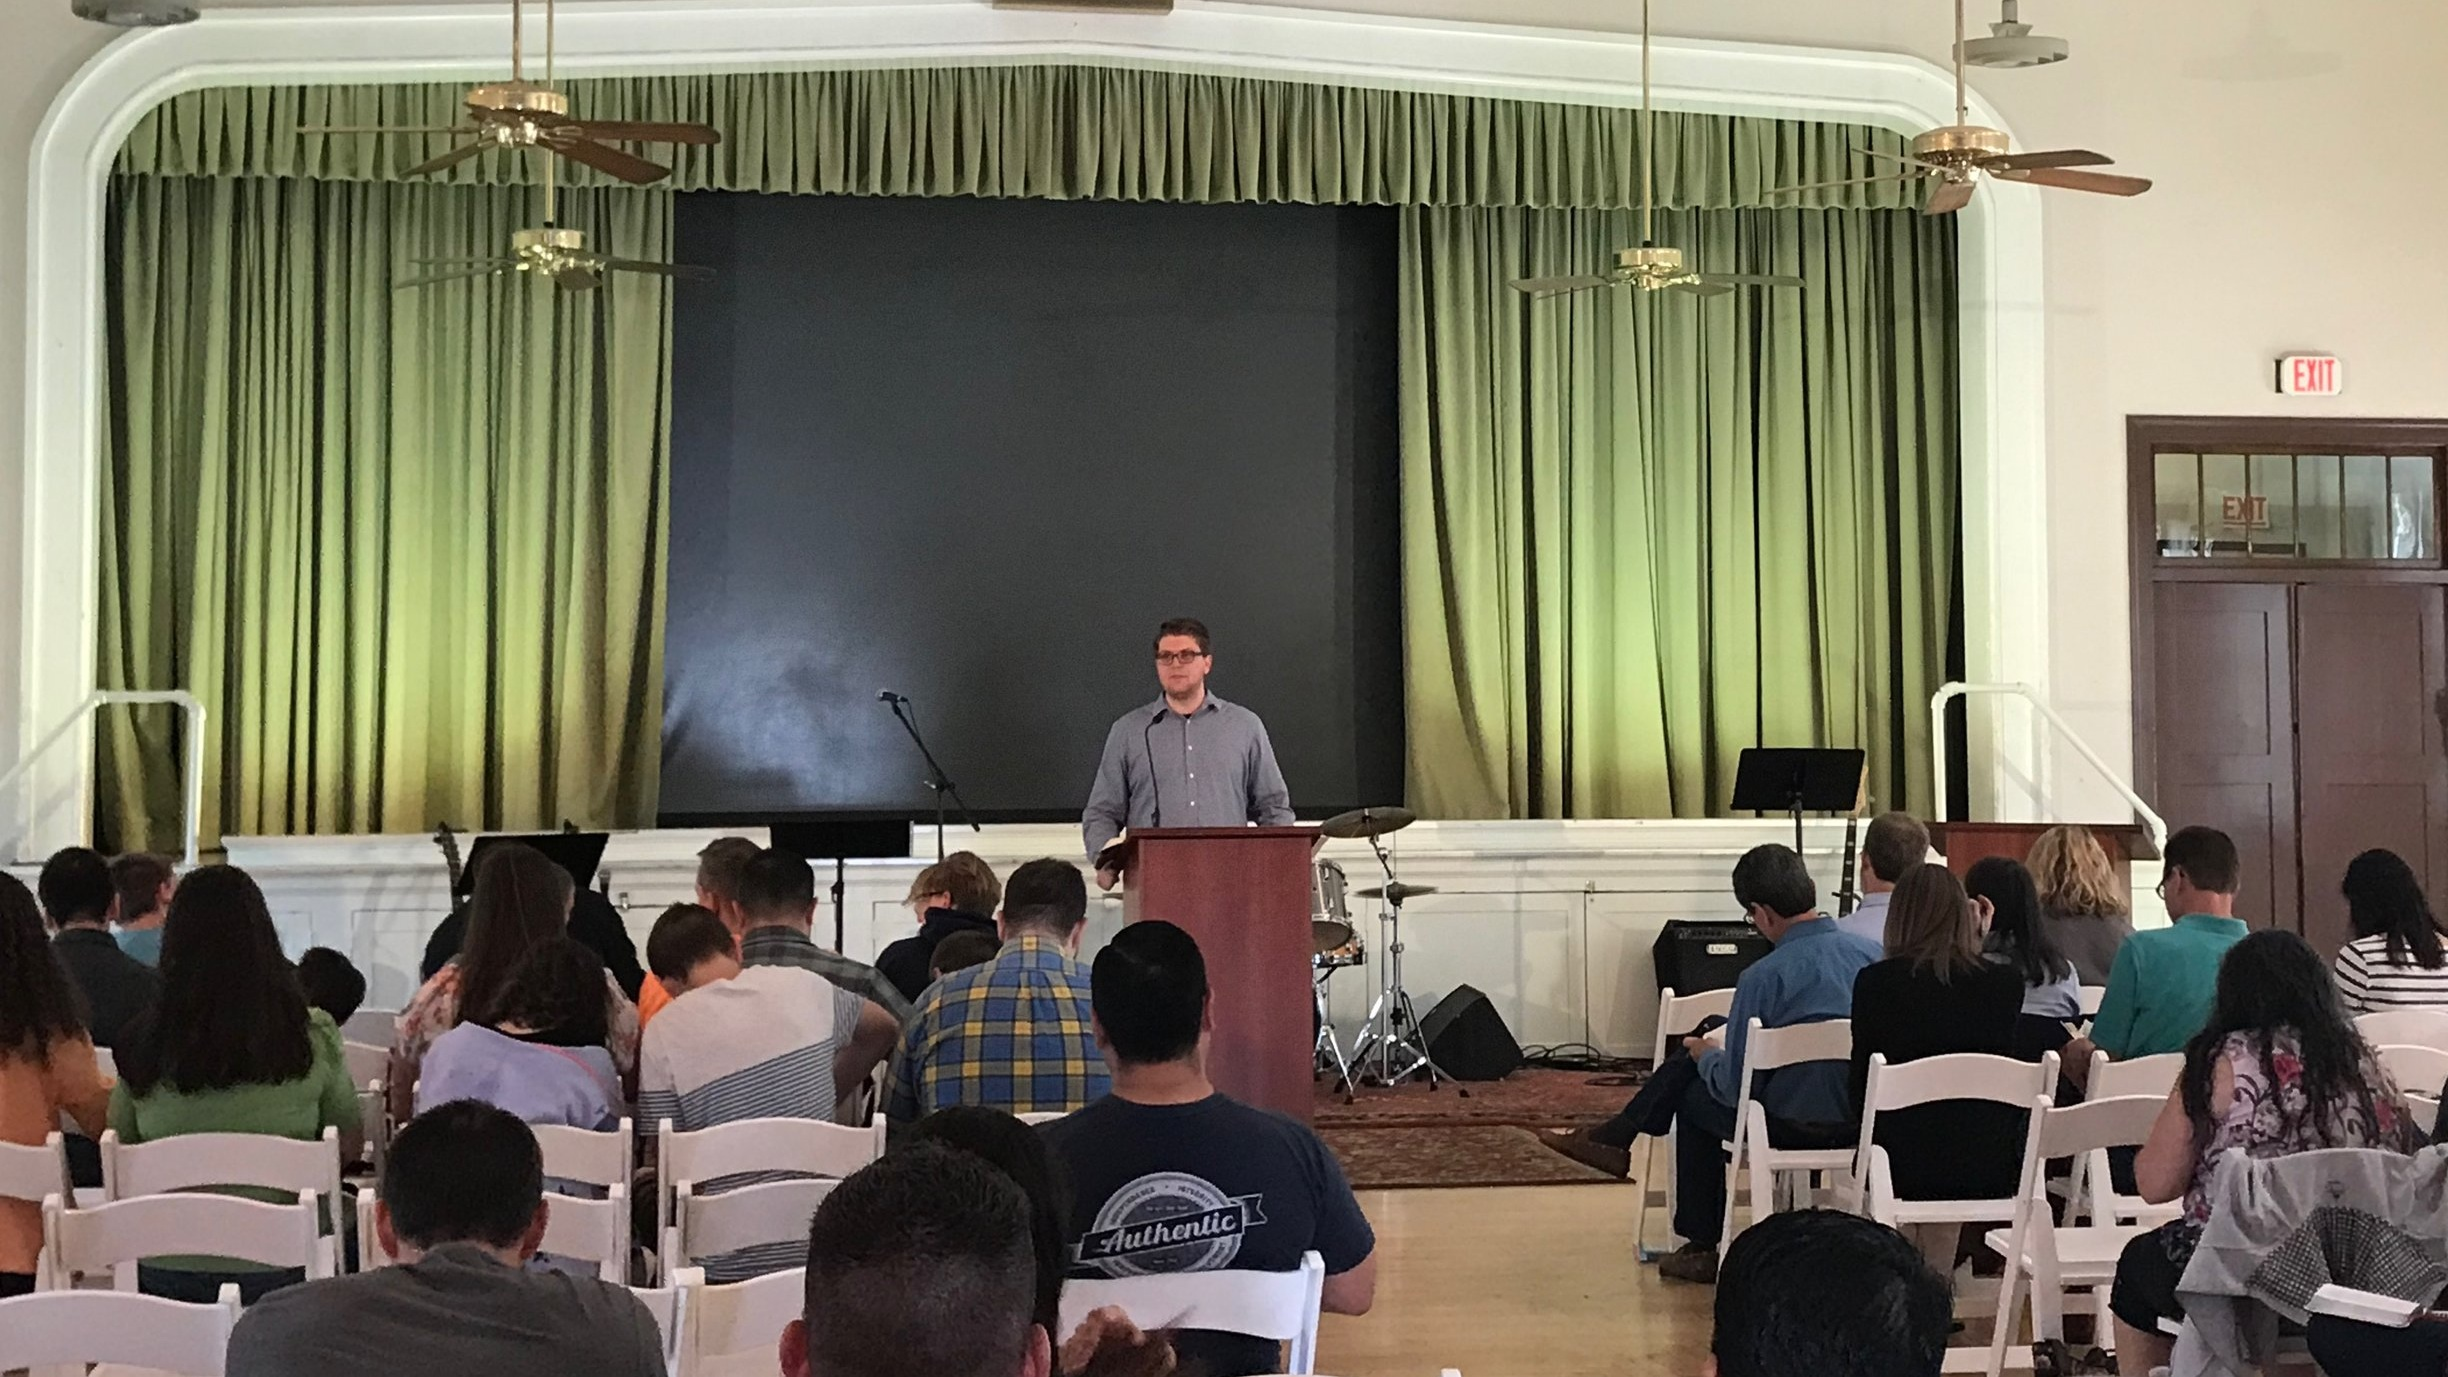 expository preaching — Blog — Sovereign Grace Church